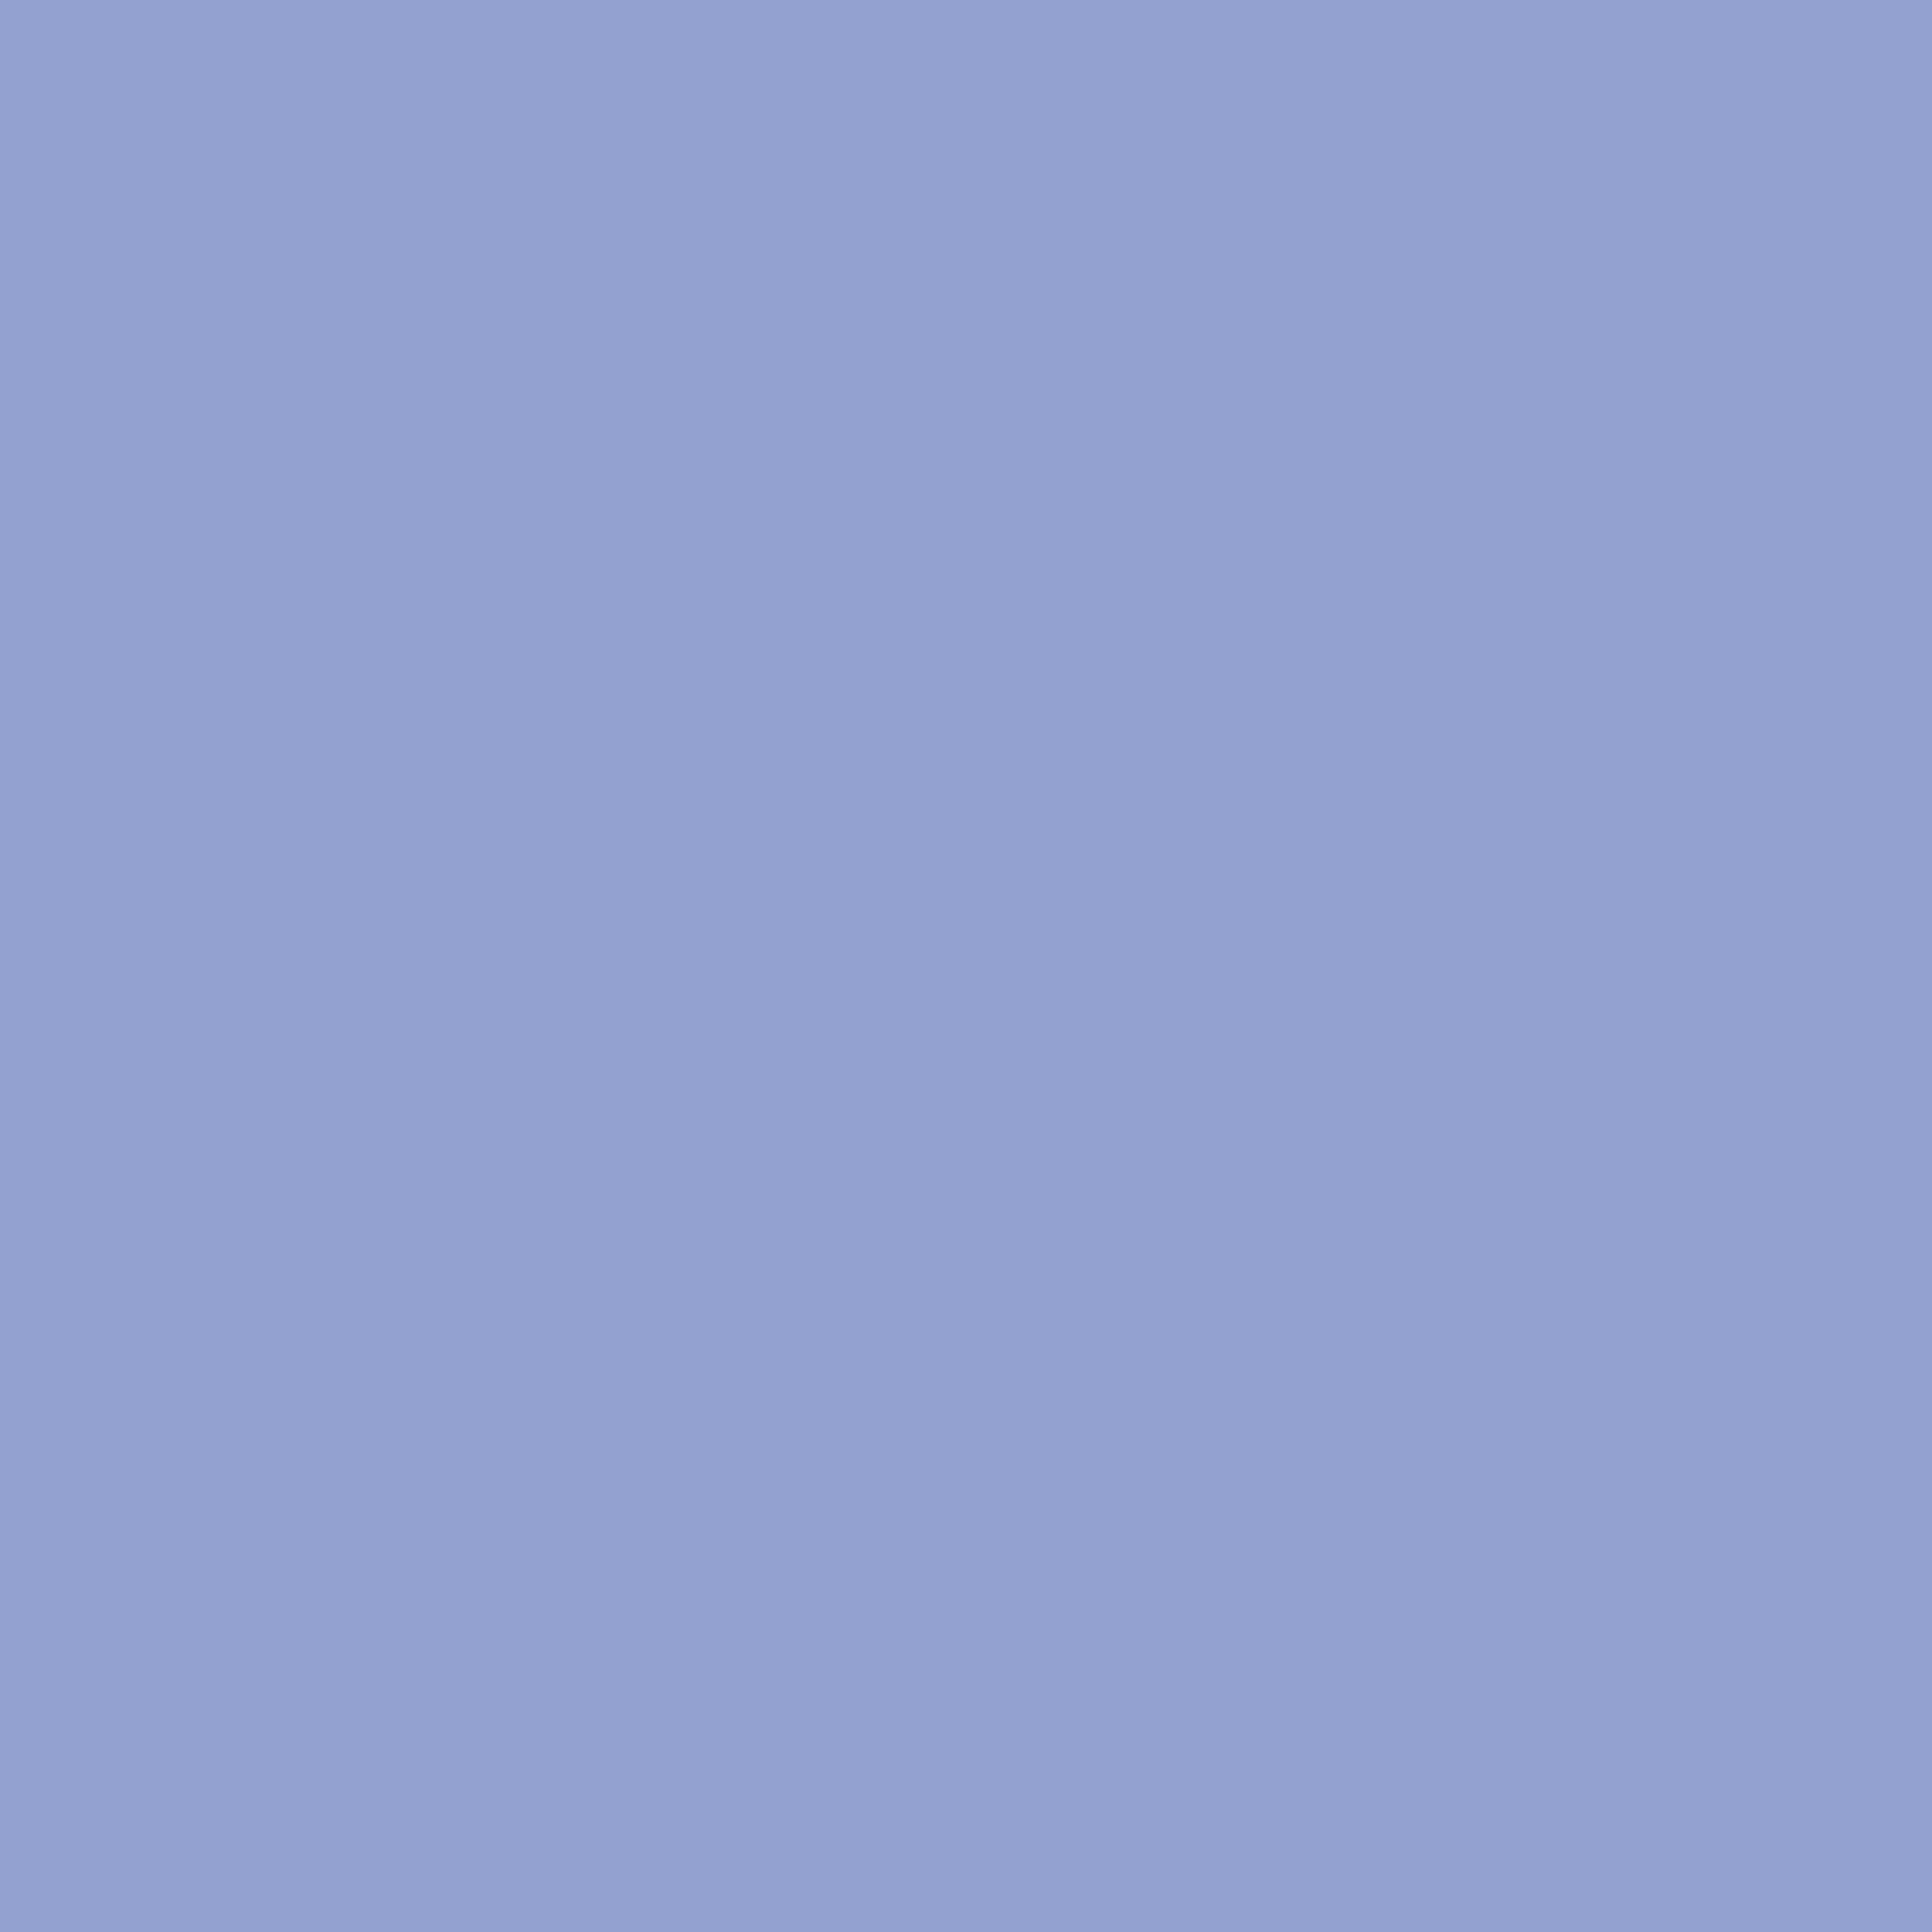 2732x2732 Ceil Solid Color Background